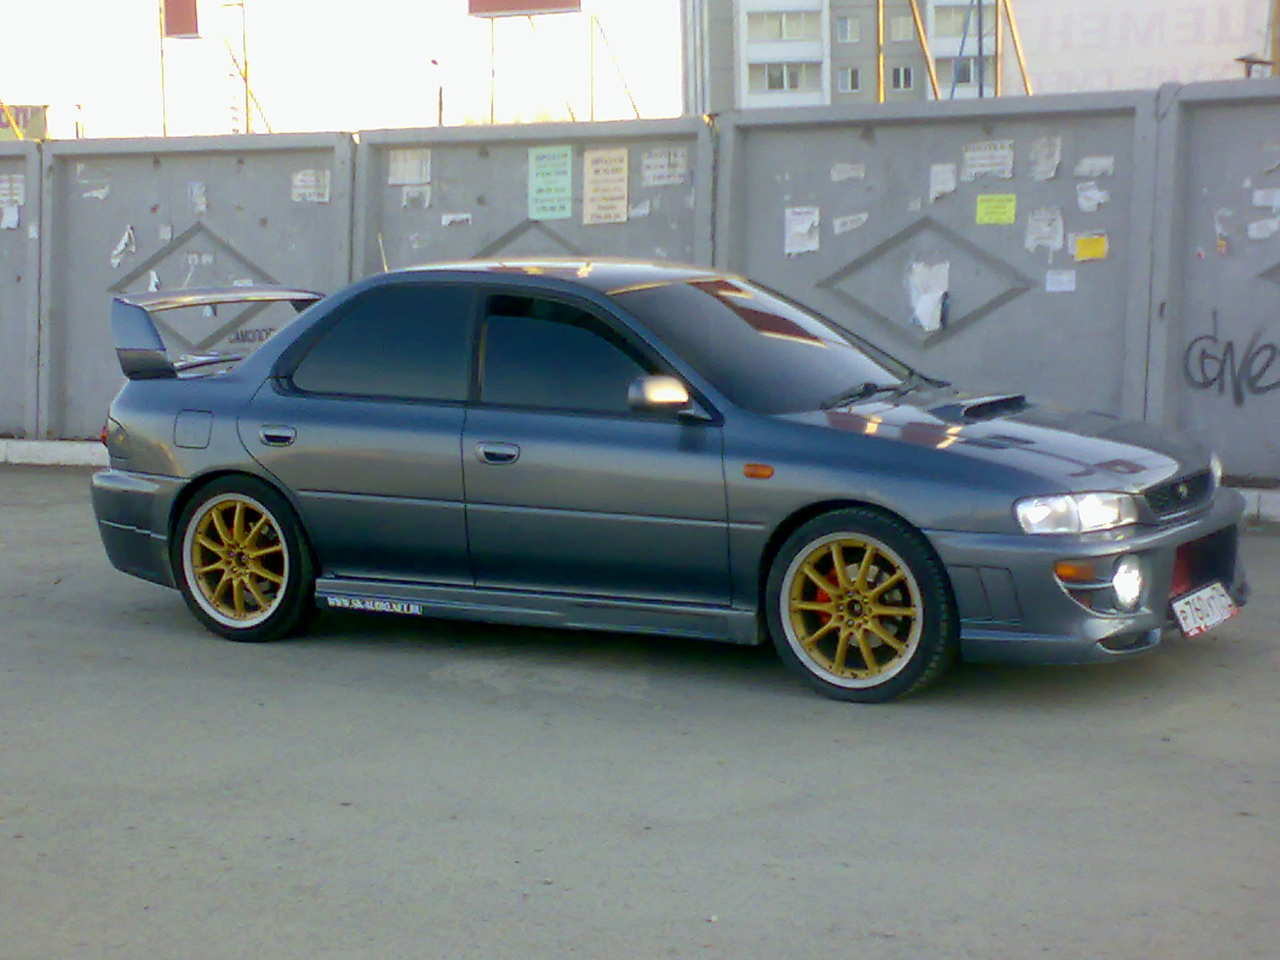 1999 Subaru Impreza WRX For Sale, 2.0, Automatic For Sale